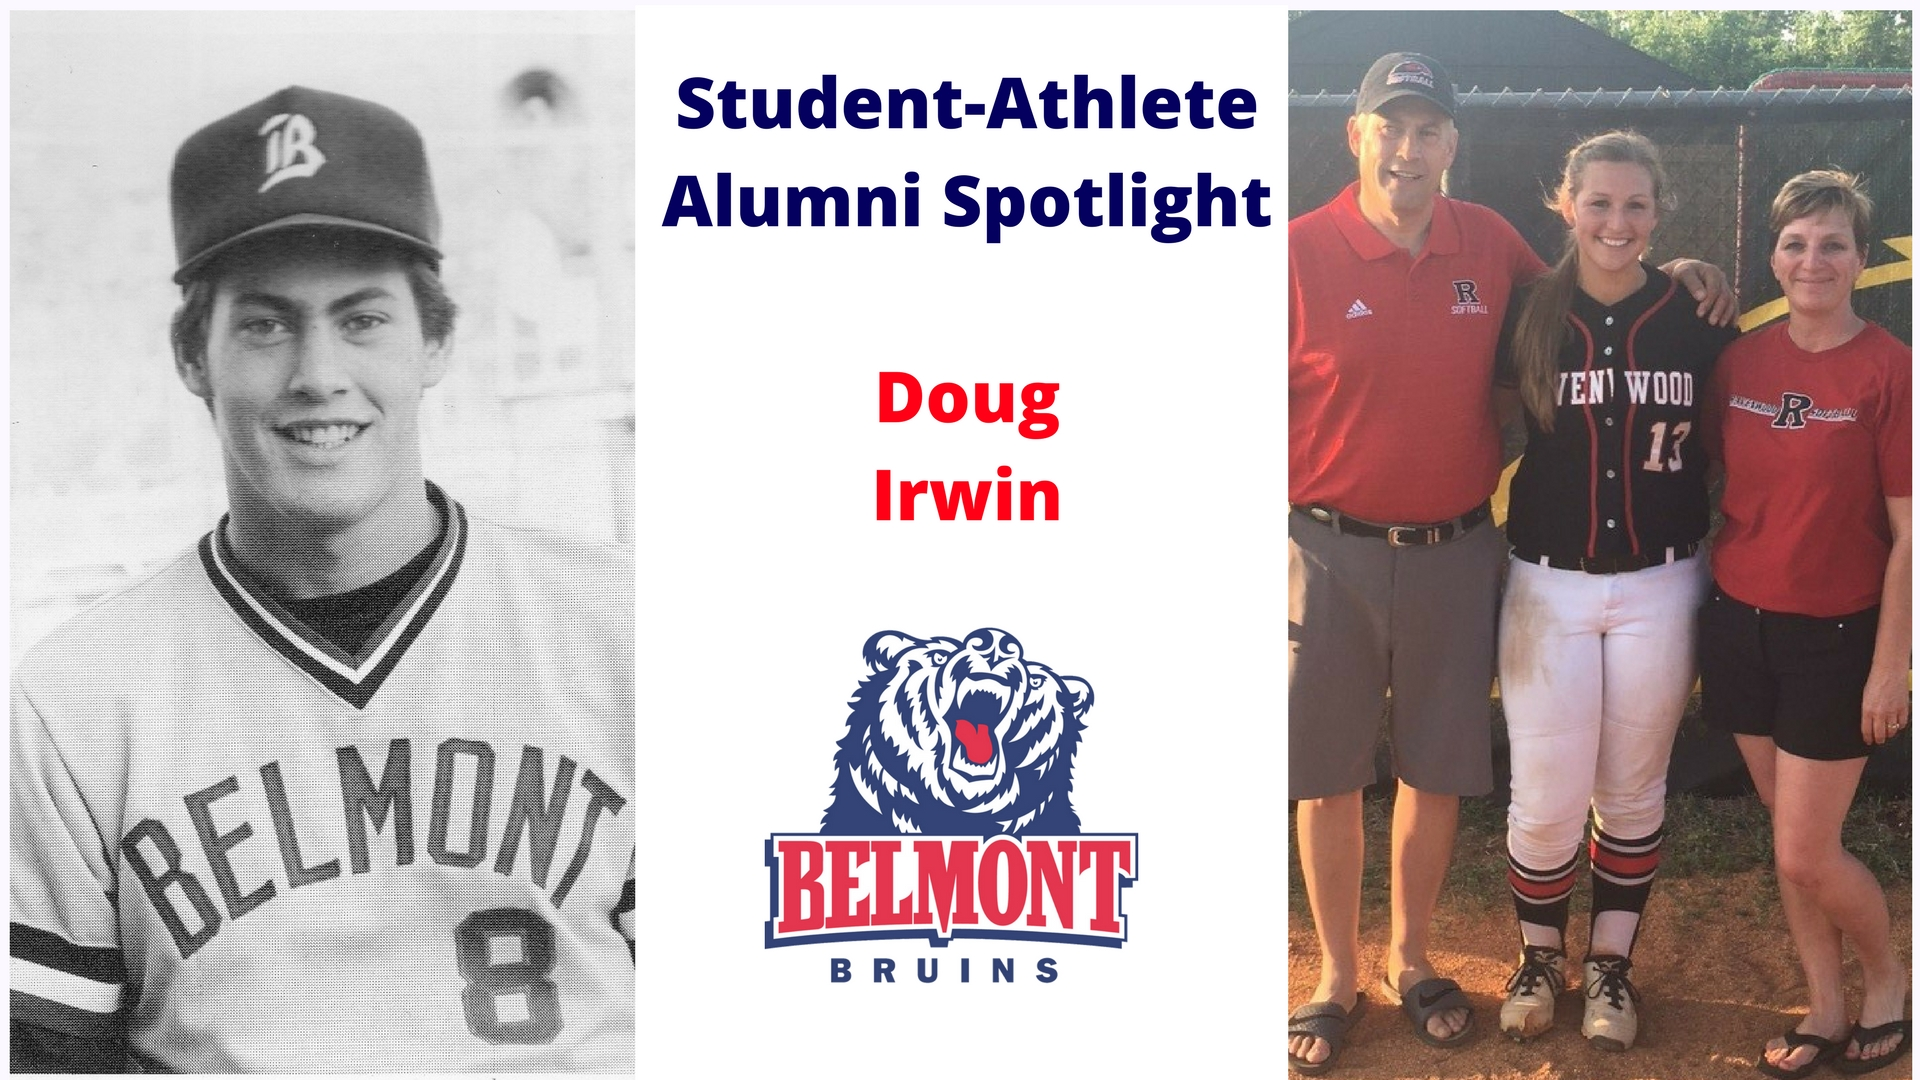 Student-Athlete Alumni Spotlight -- Doug Irwin